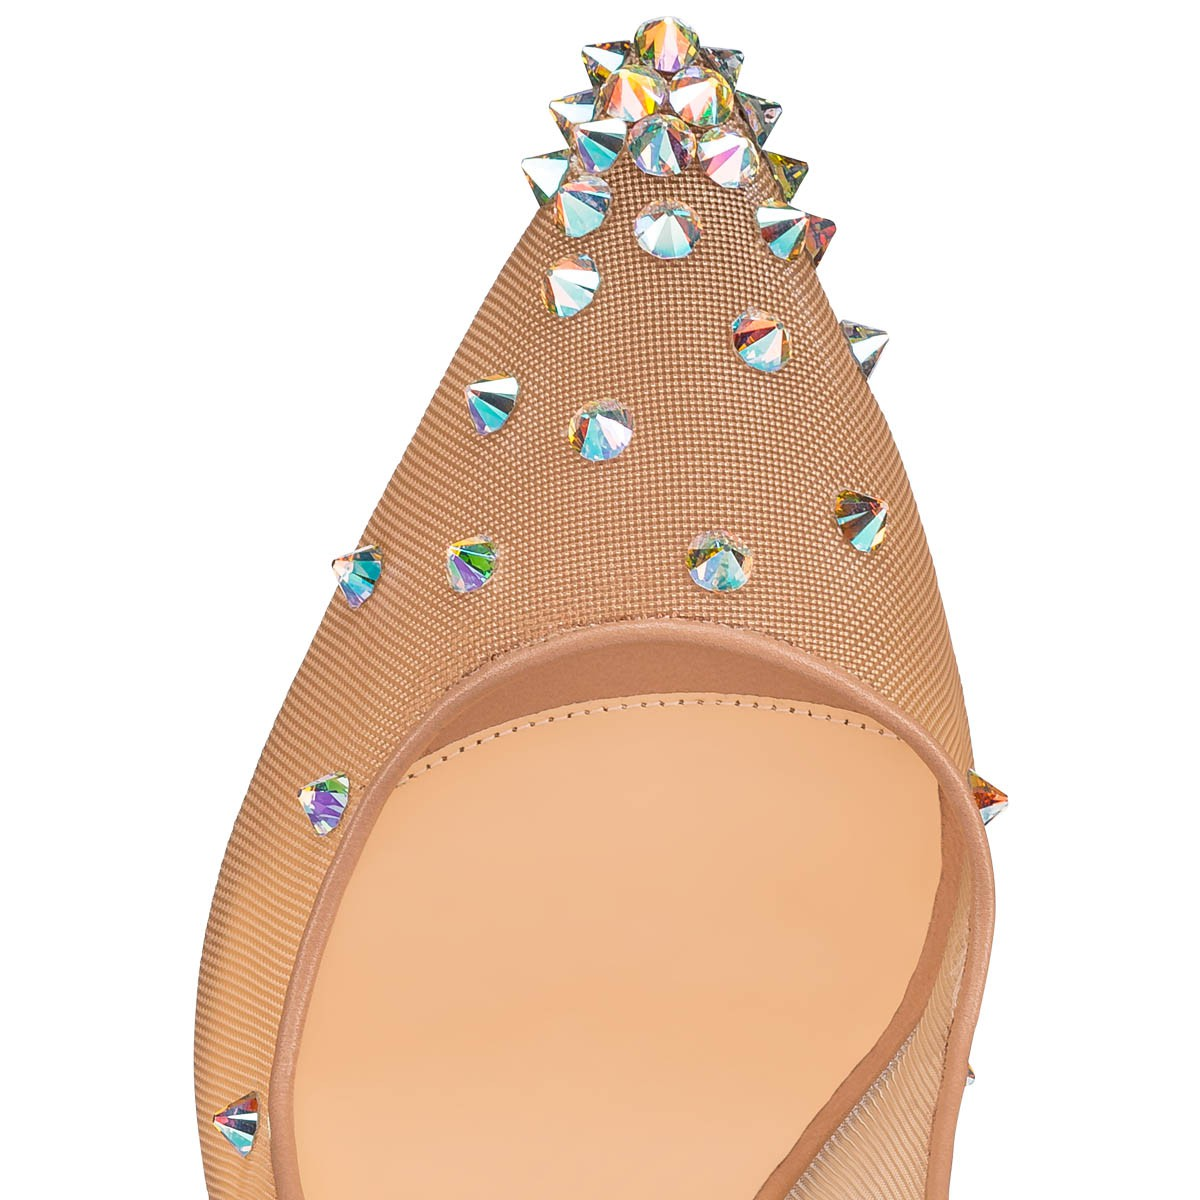 ウィメンズシューズ - Degra 2019 - Christian Louboutin